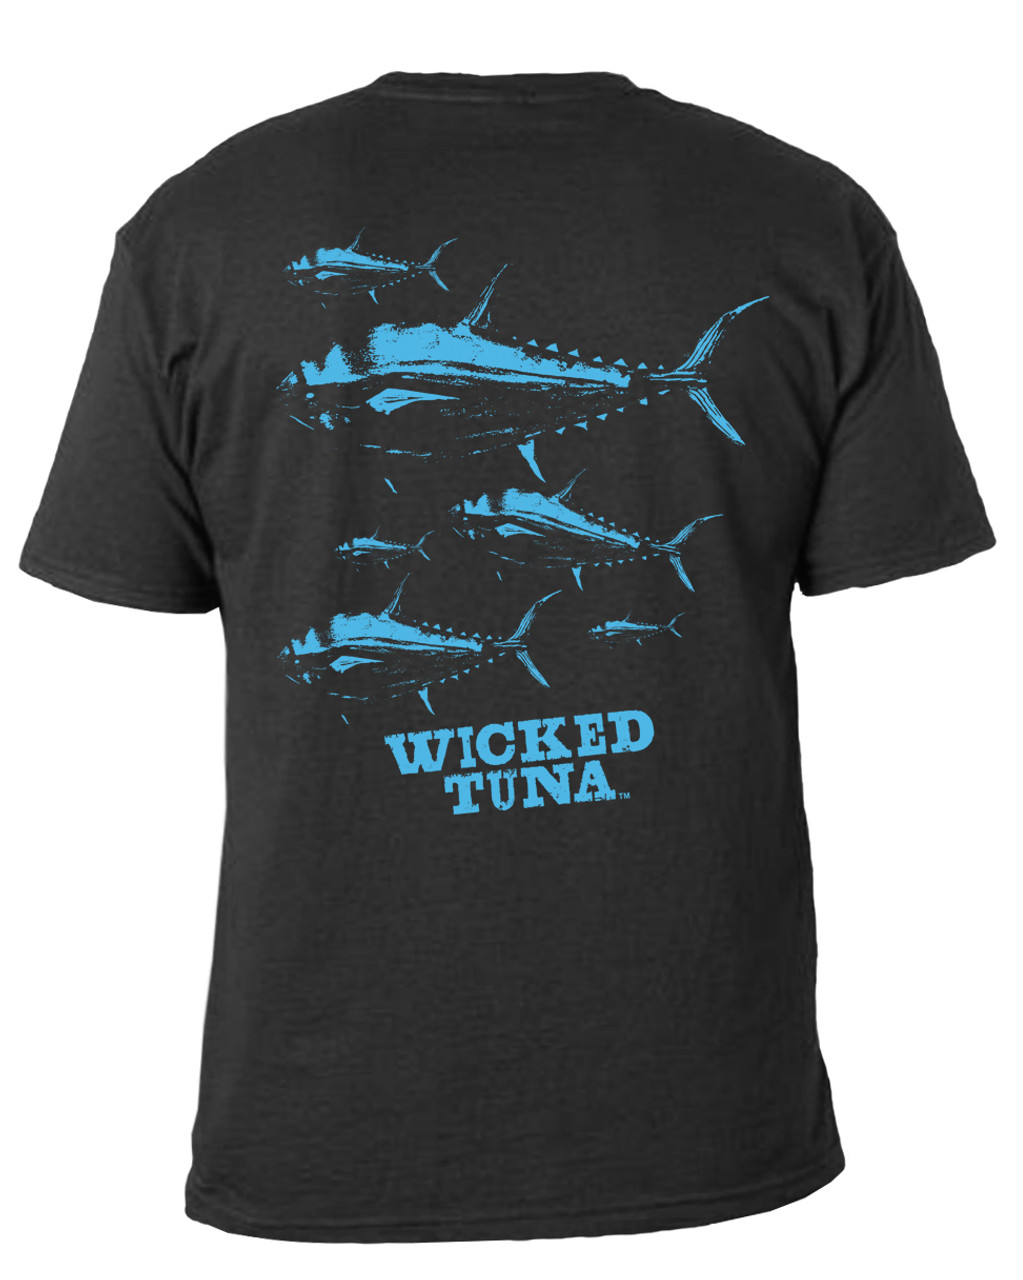 9ebd44c6 So Many Tuna! Pocket Tee - Wicked Tuna Gear